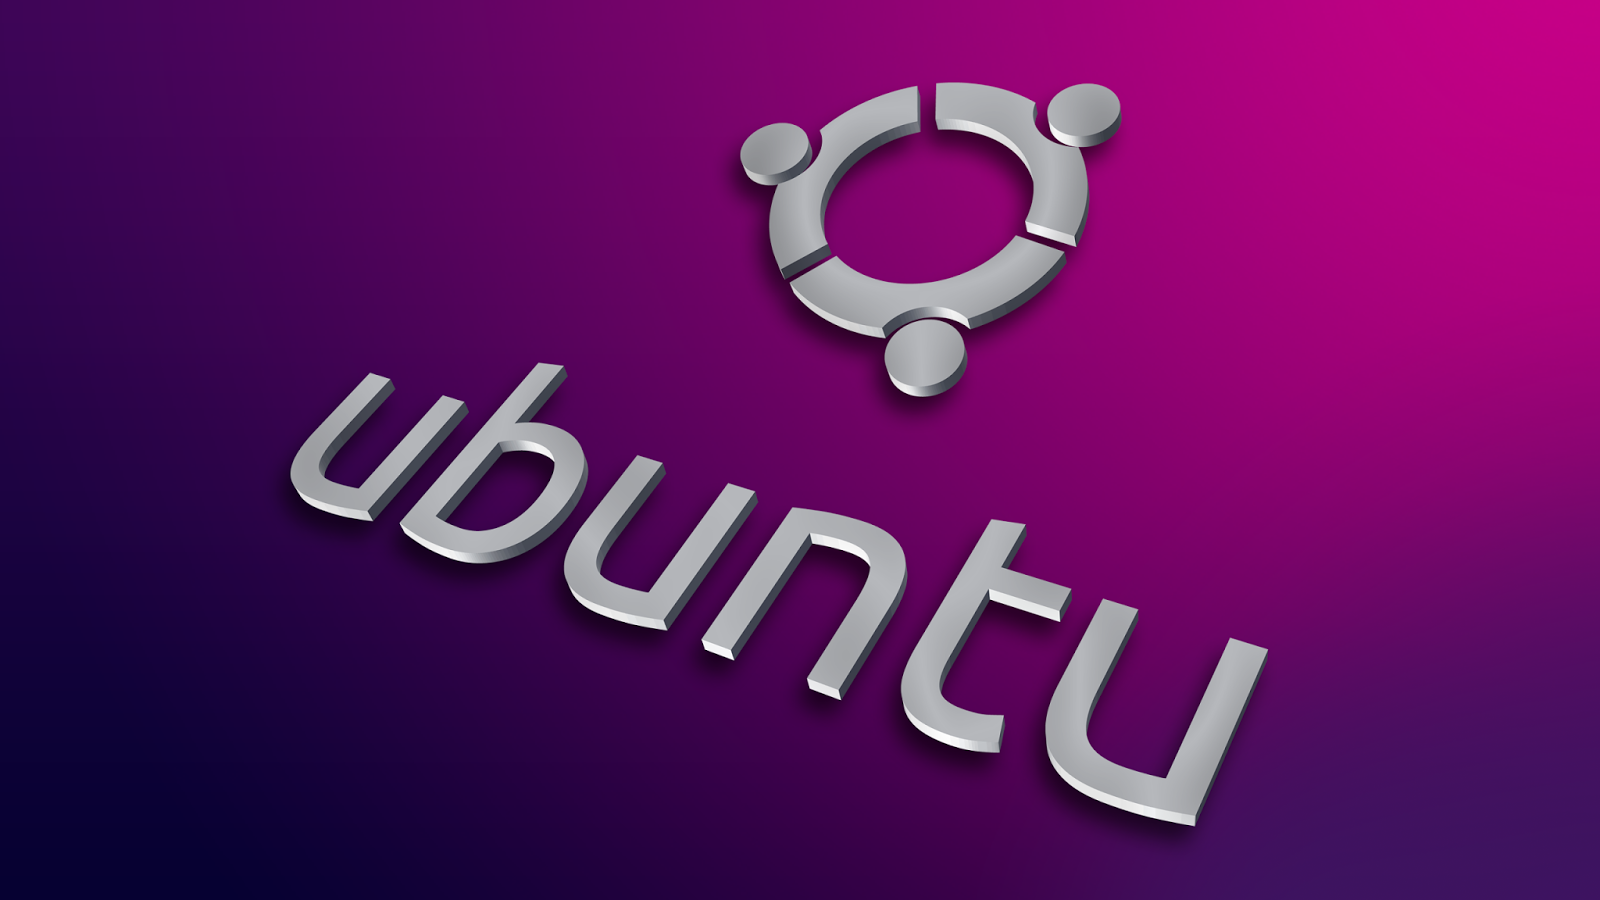 Ubuntu Linux Wallpapers Collections